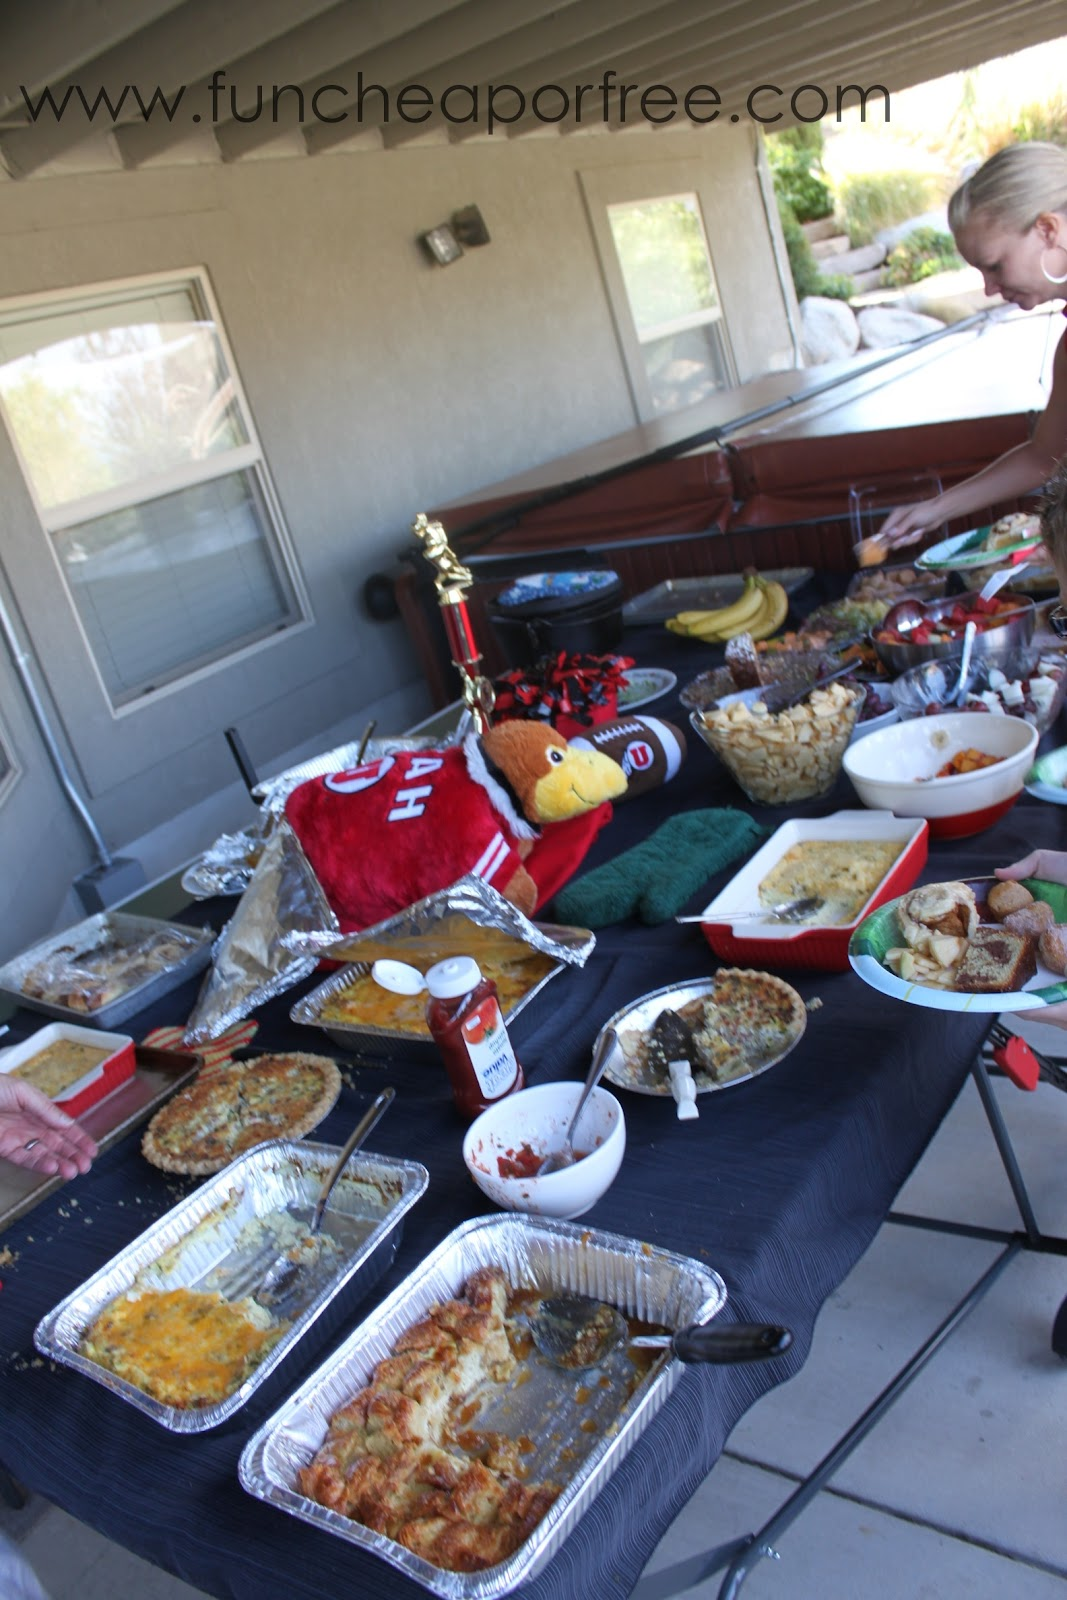 Ideas For A Fun Cheap Or Free FOOTBALL Party Superbowl Homecoming Colleg